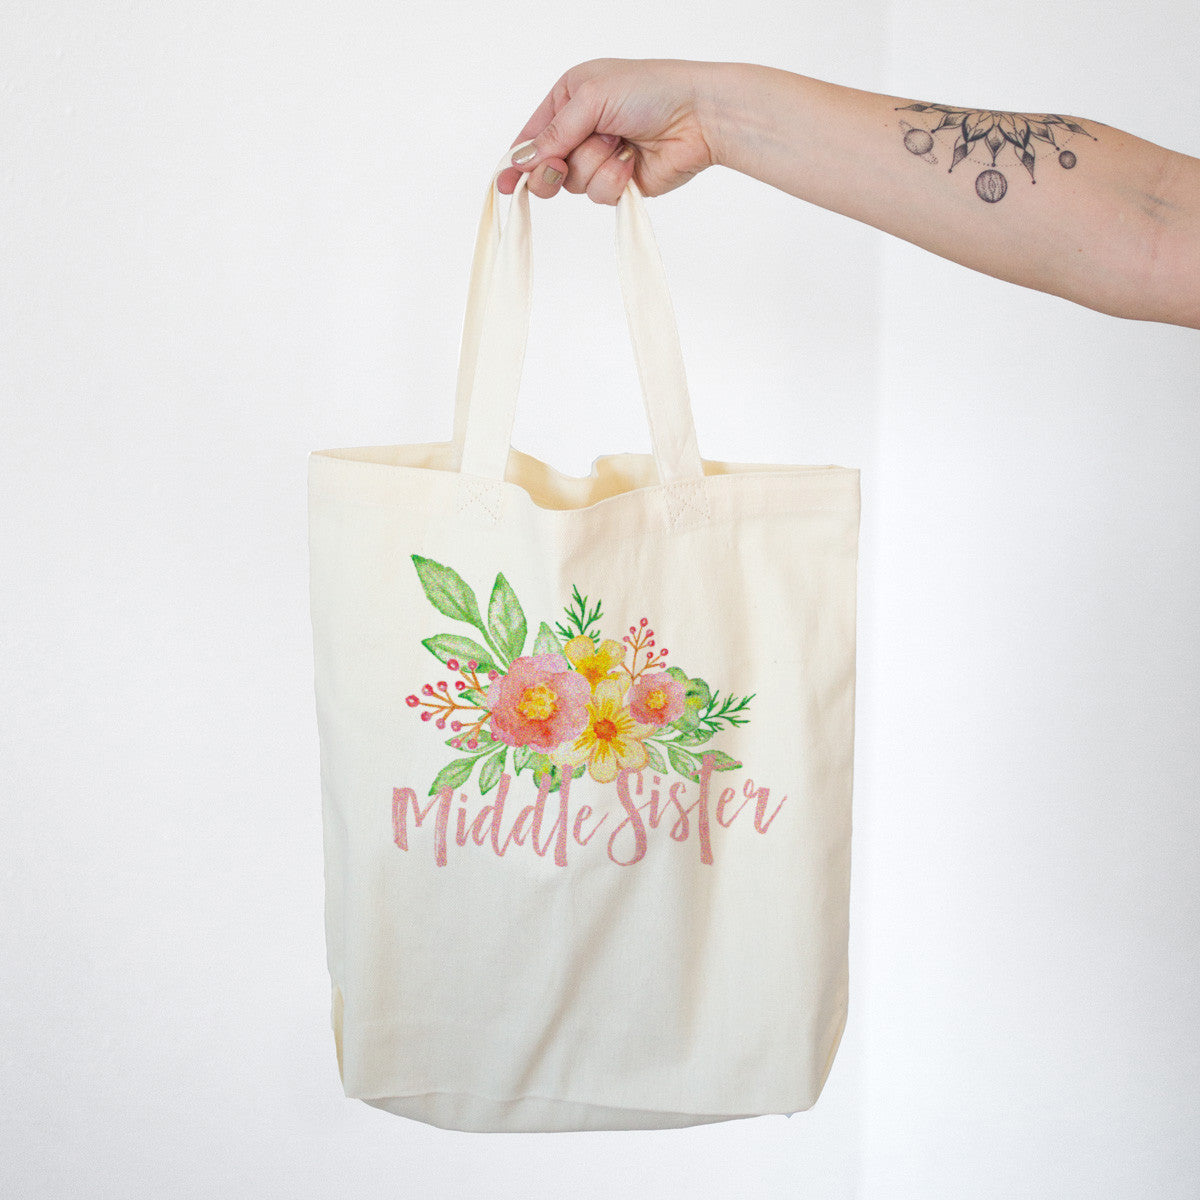 Middle Sister - Watercolor Flowers Cotton Tote Bag - pipercleo.com